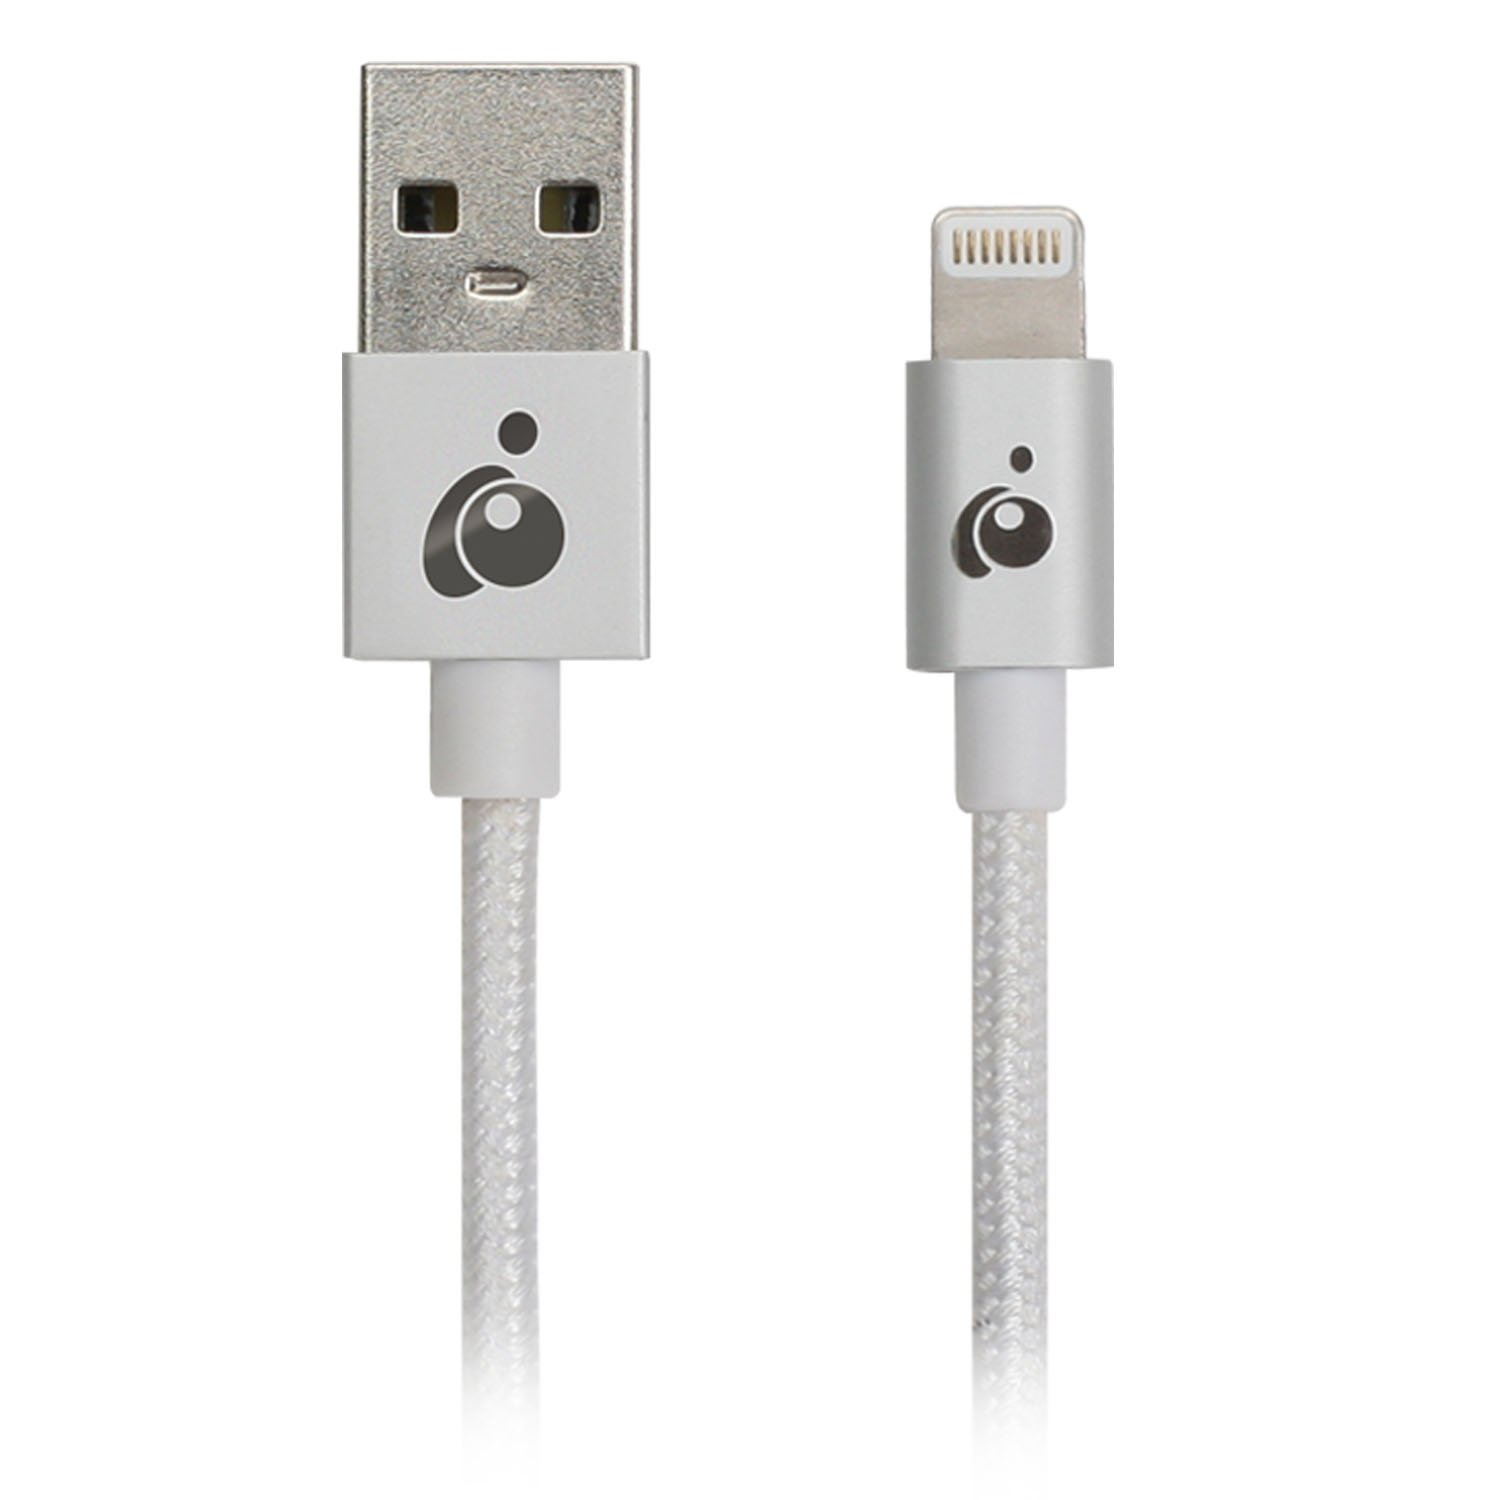 iogear GAUL01-SILIOGEAR Charge & Sync Flip Pro + Apple MFI Certified Lightning to Reversible USB Cable for iPad/iPhone/iPod, 1 Meter/3.3 Feet, Silver